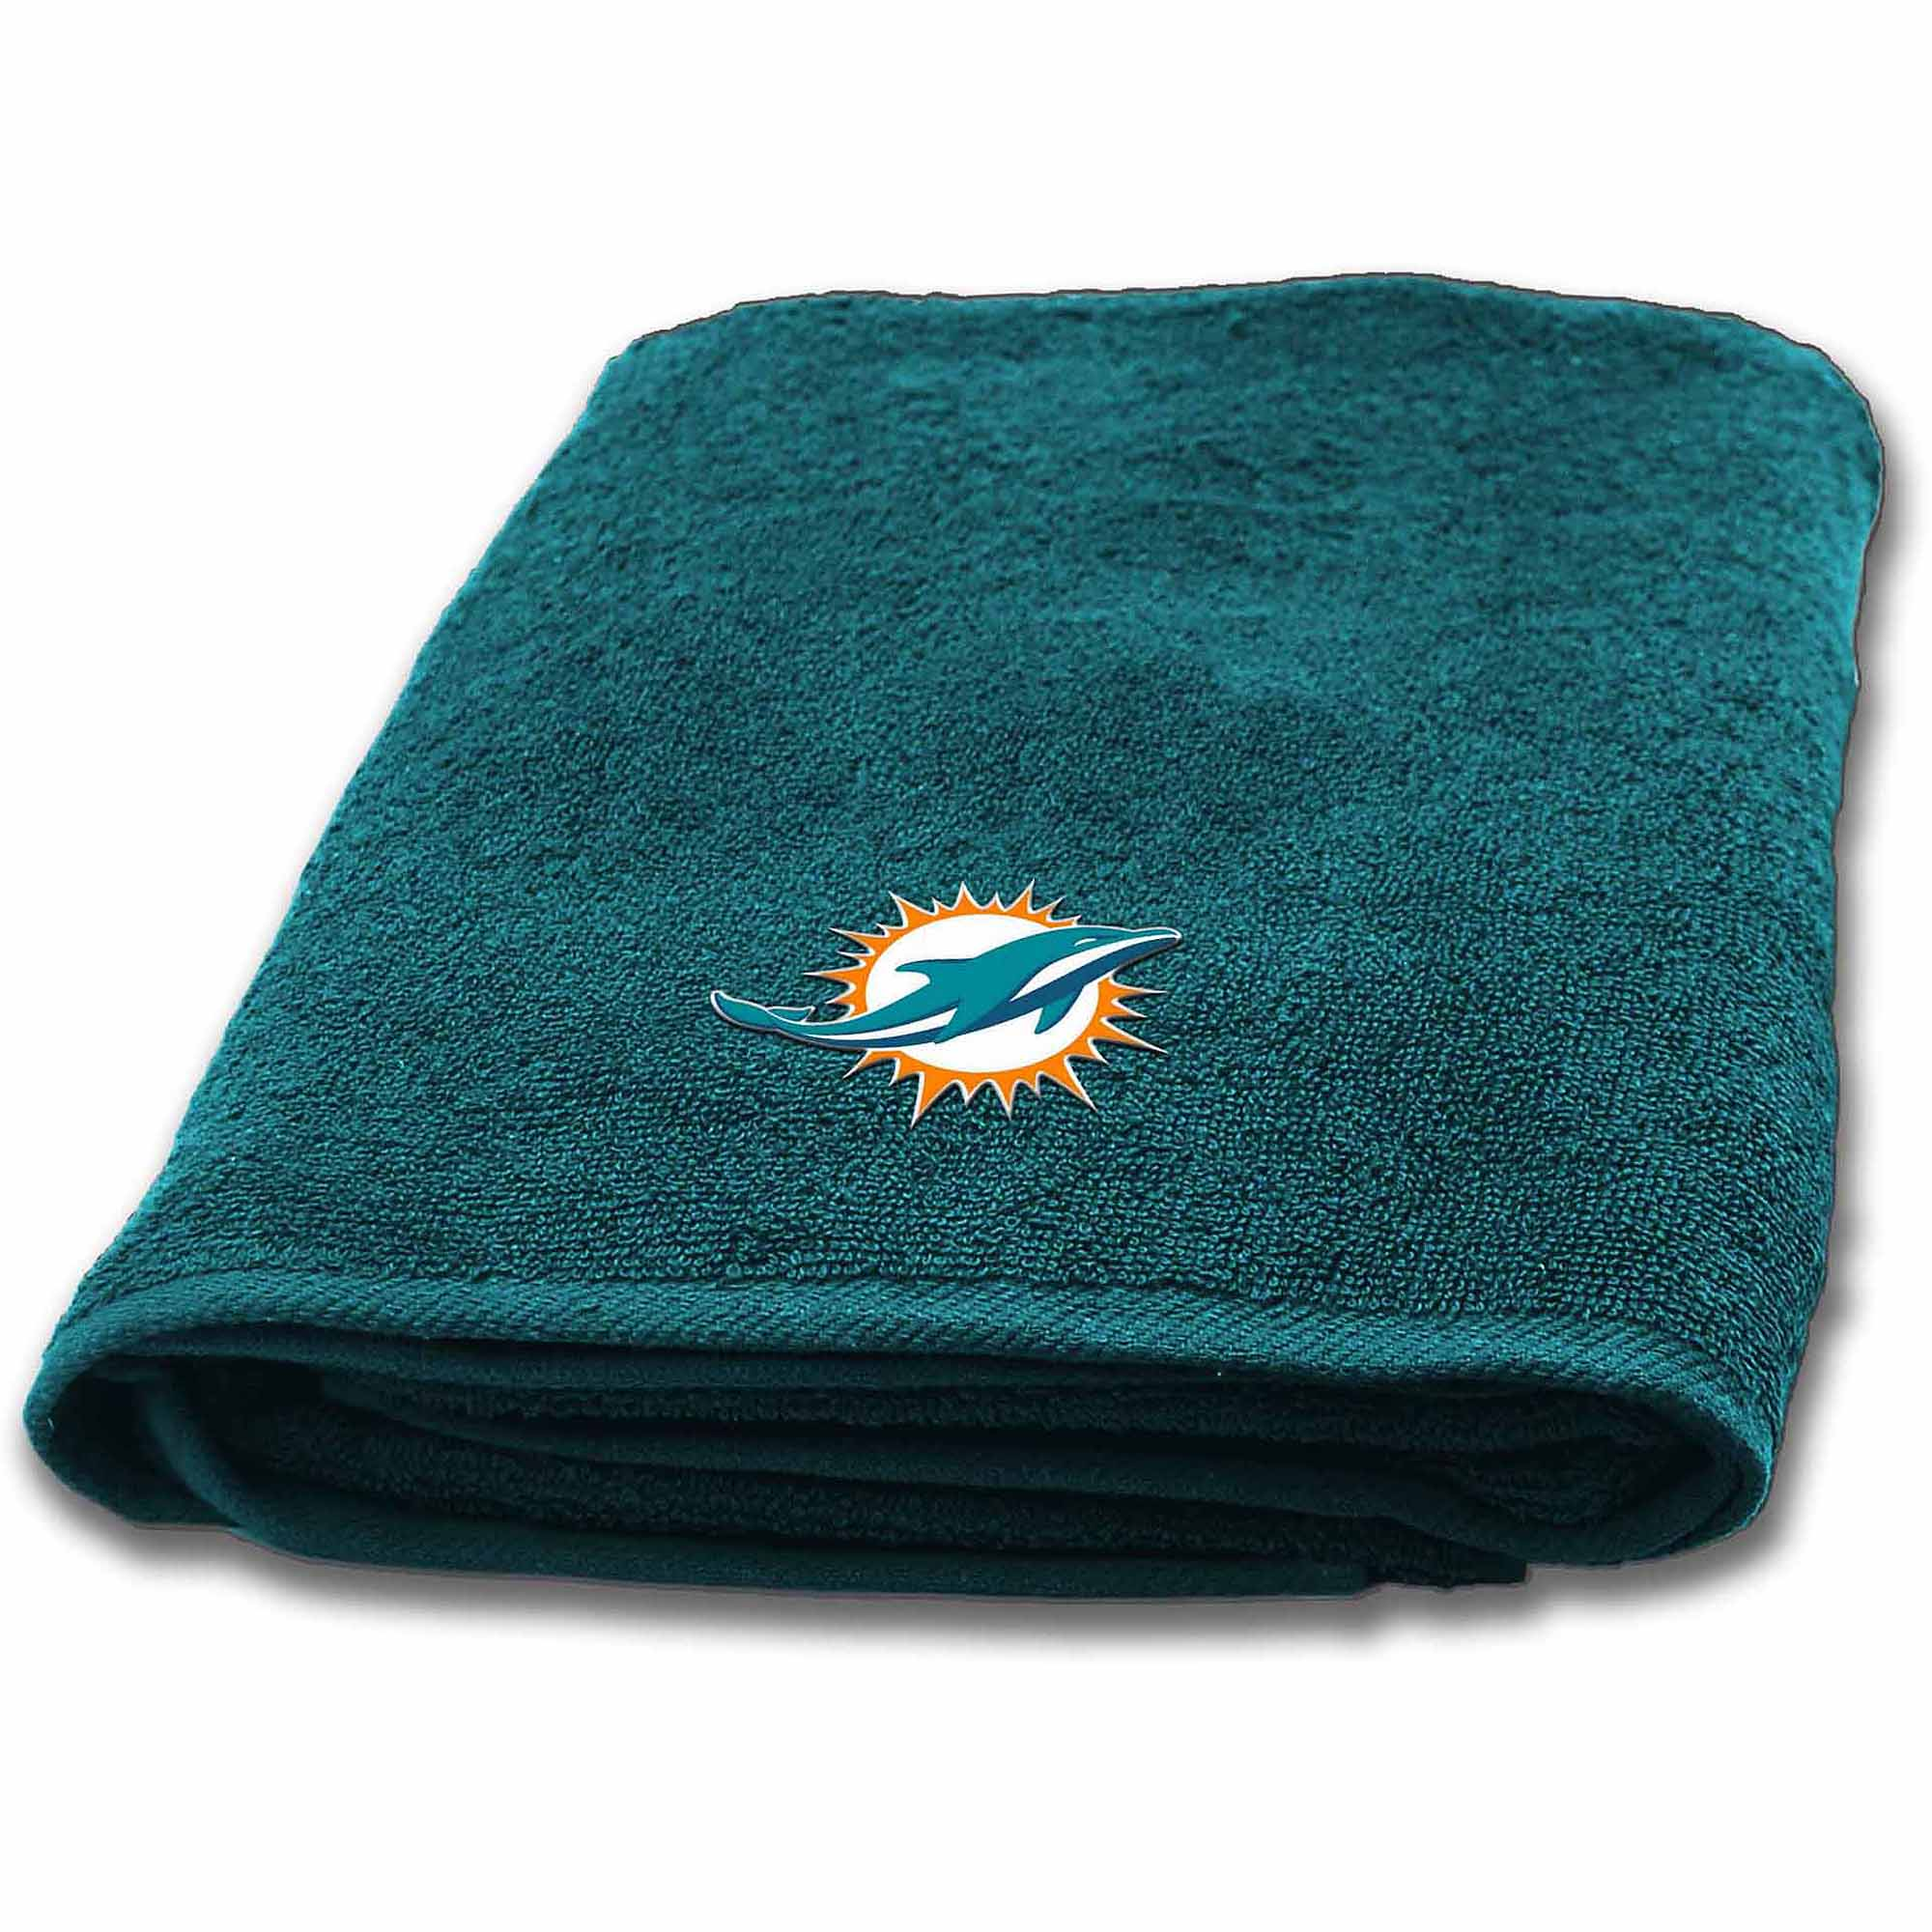 NFL Miami Dolphins Decorative Bath Collection - Bath Towel